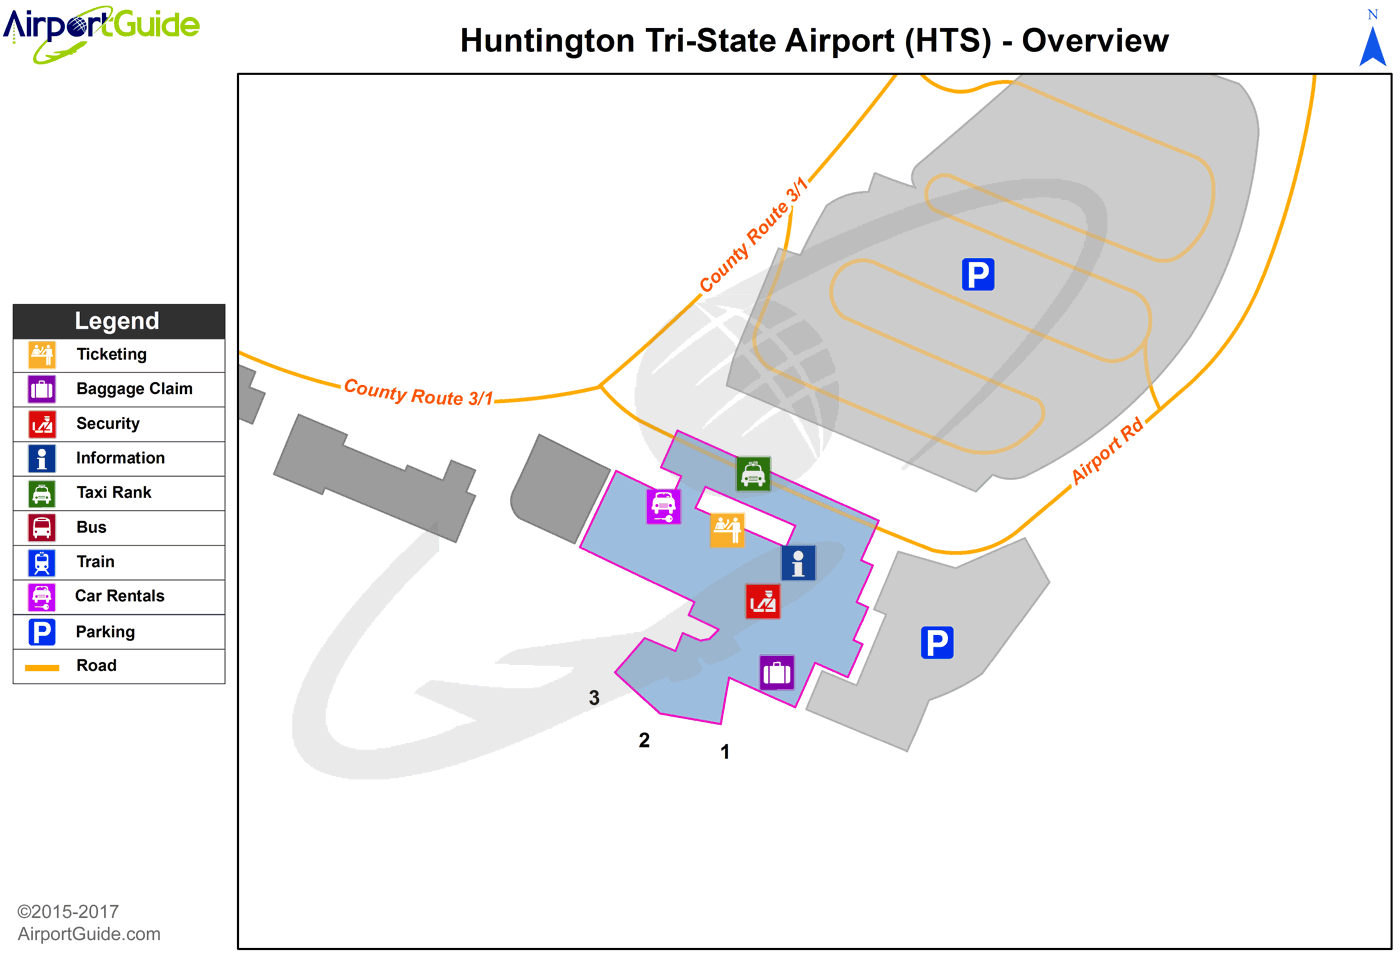 Huntington - Tri-State/Milton J Ferguson Field (HTS) Airport Terminal Map - Overview